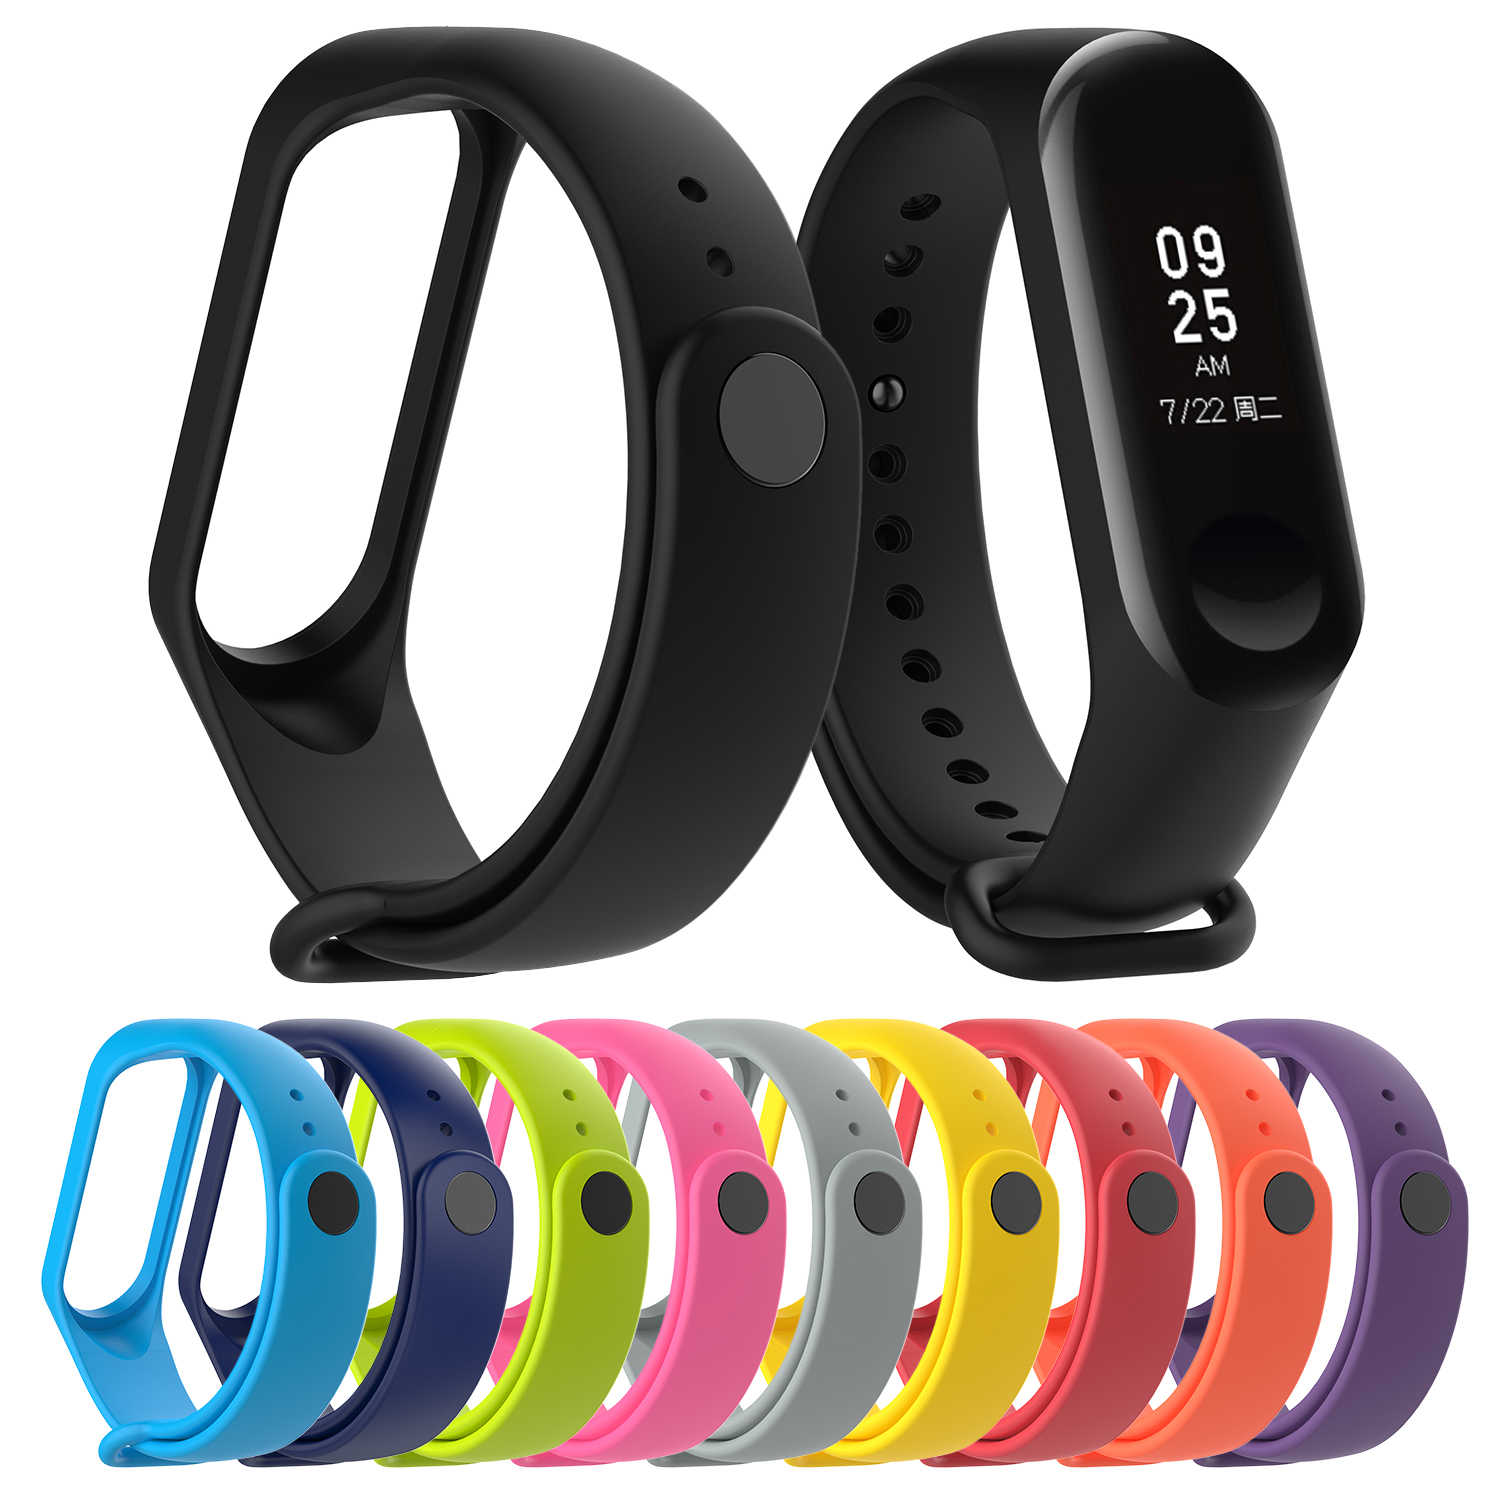 Gierst Silica Armband 4 Polsband Smart Sport Armband Vervanging voor Xiao Mi Armband 4 Polsband Fitness Horloge Band 4